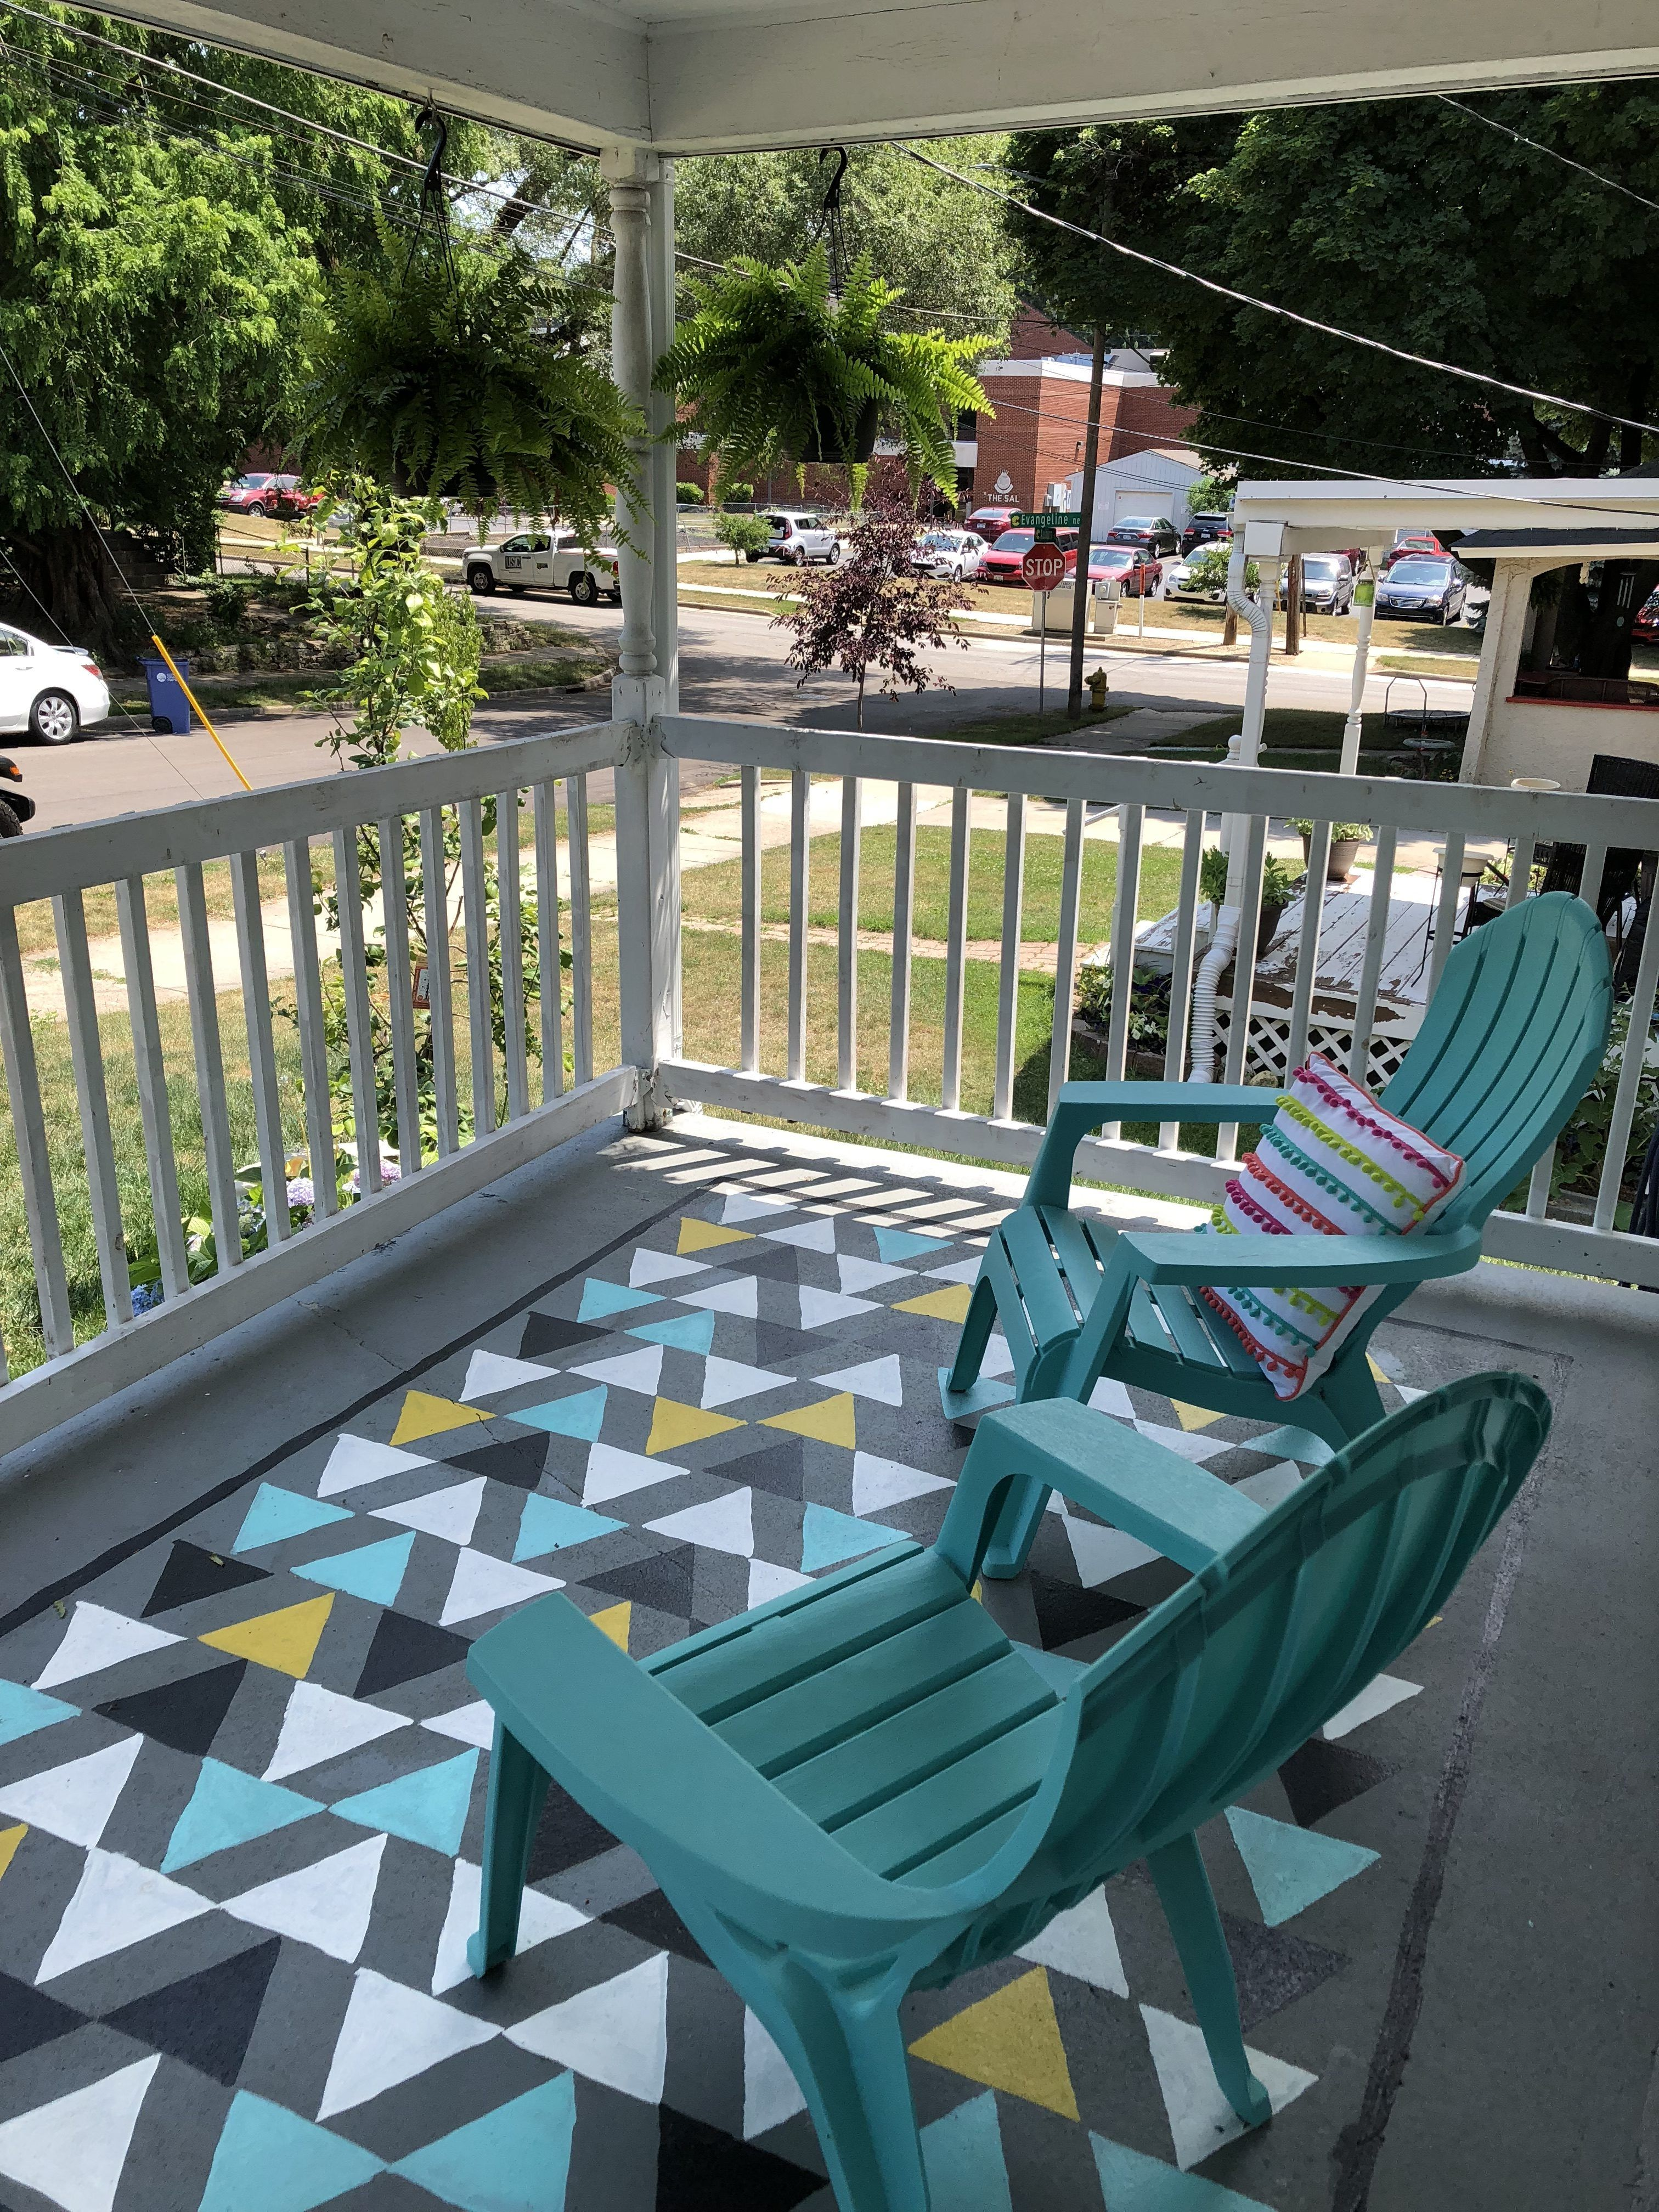 Add A Fun Pop Of Color To Your Porch With This Diy Stenciled Rug Diy Stencils Rug Porch Outdoorspaces Outdoo Outdoor Rugs House With Porch Porch Design